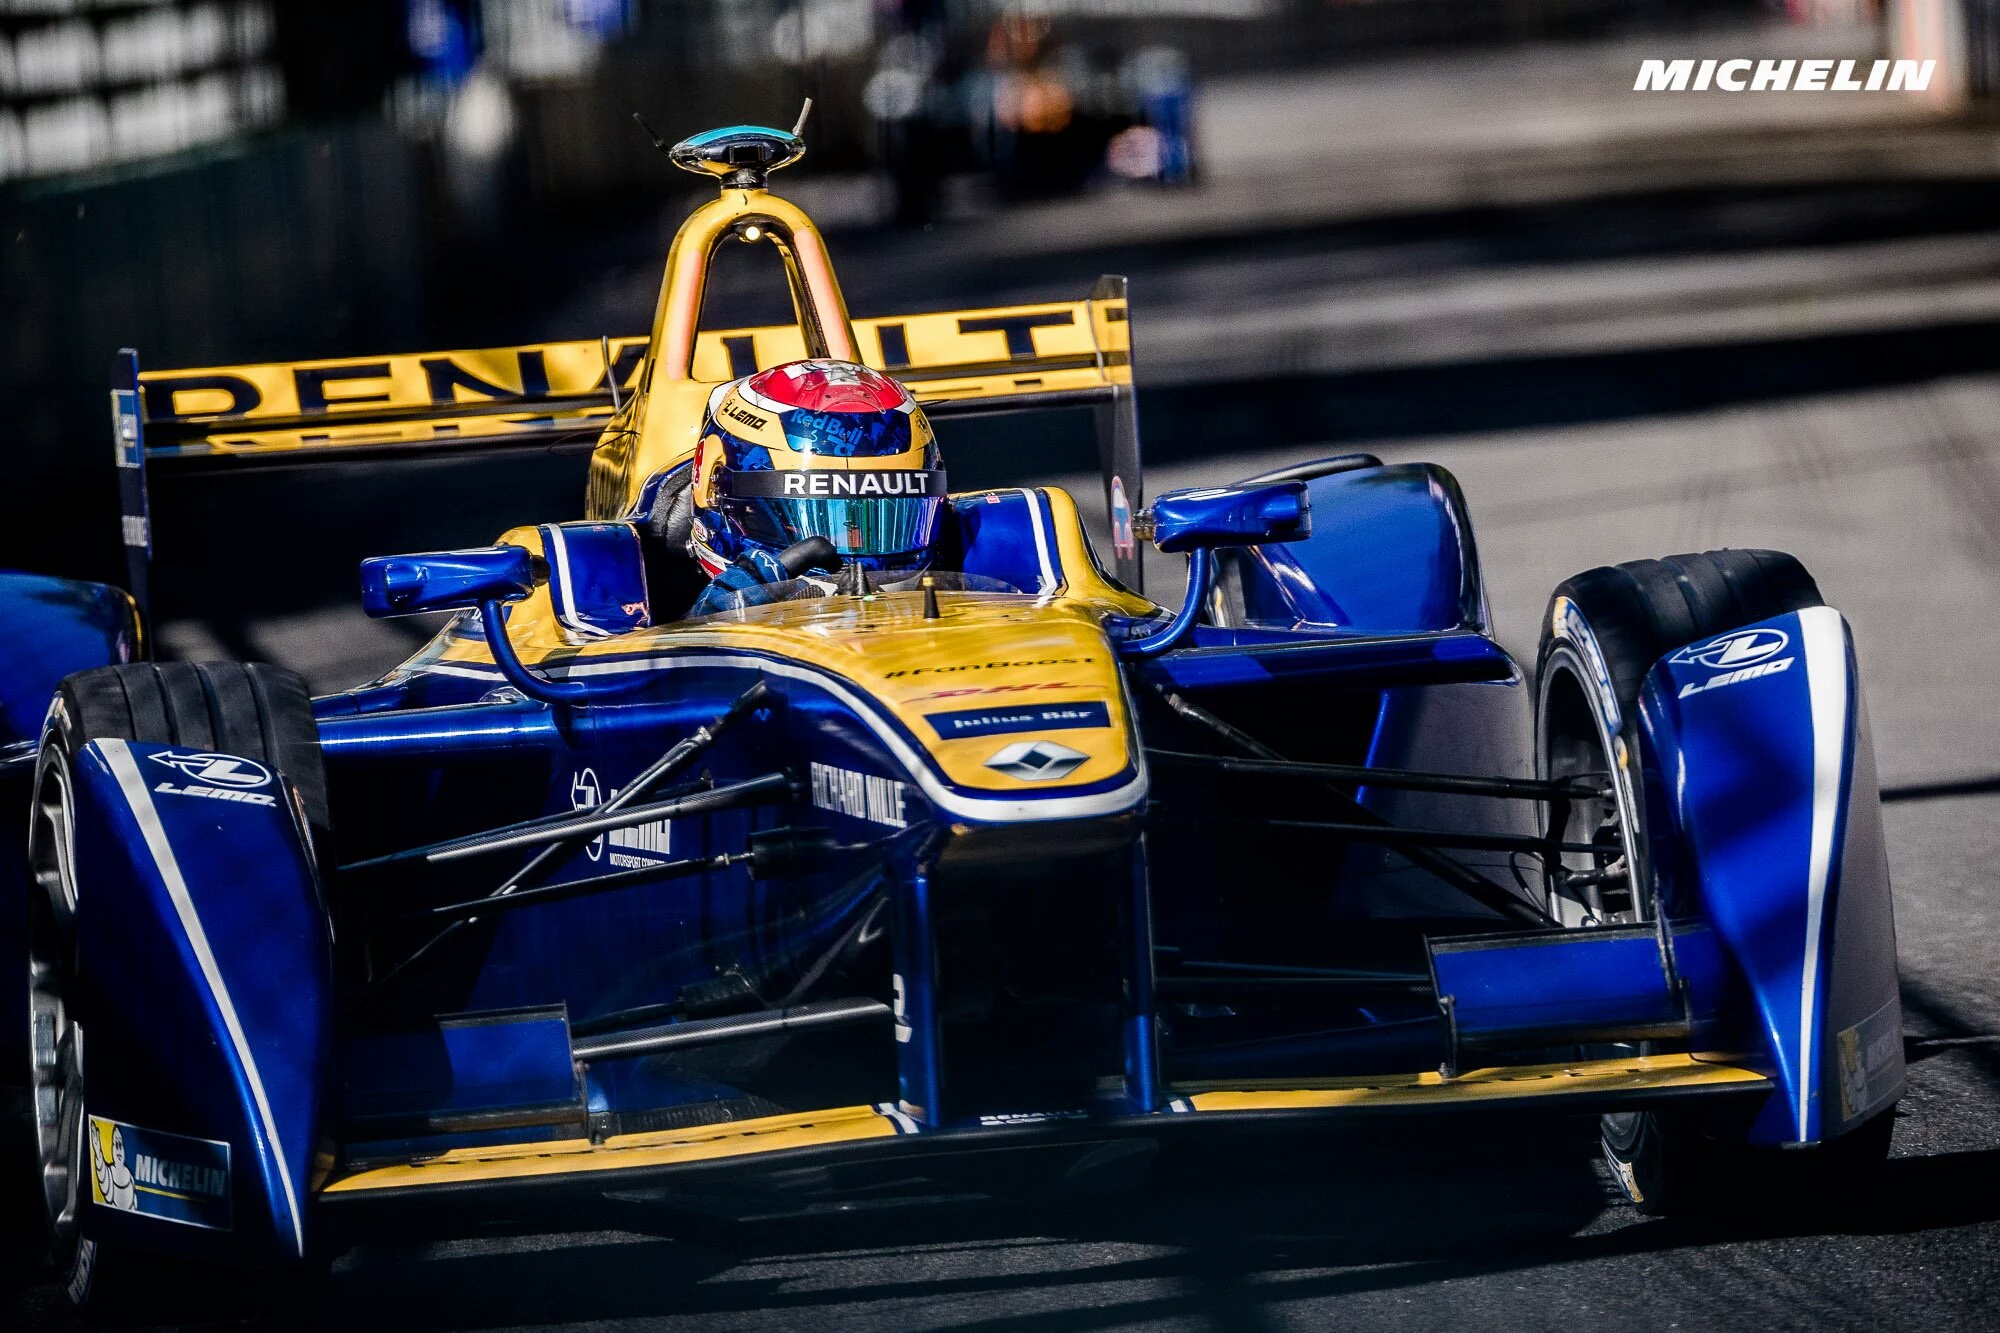 FIA Formula E: London ePrix weekend crowns Buemi and Renault-e.dams